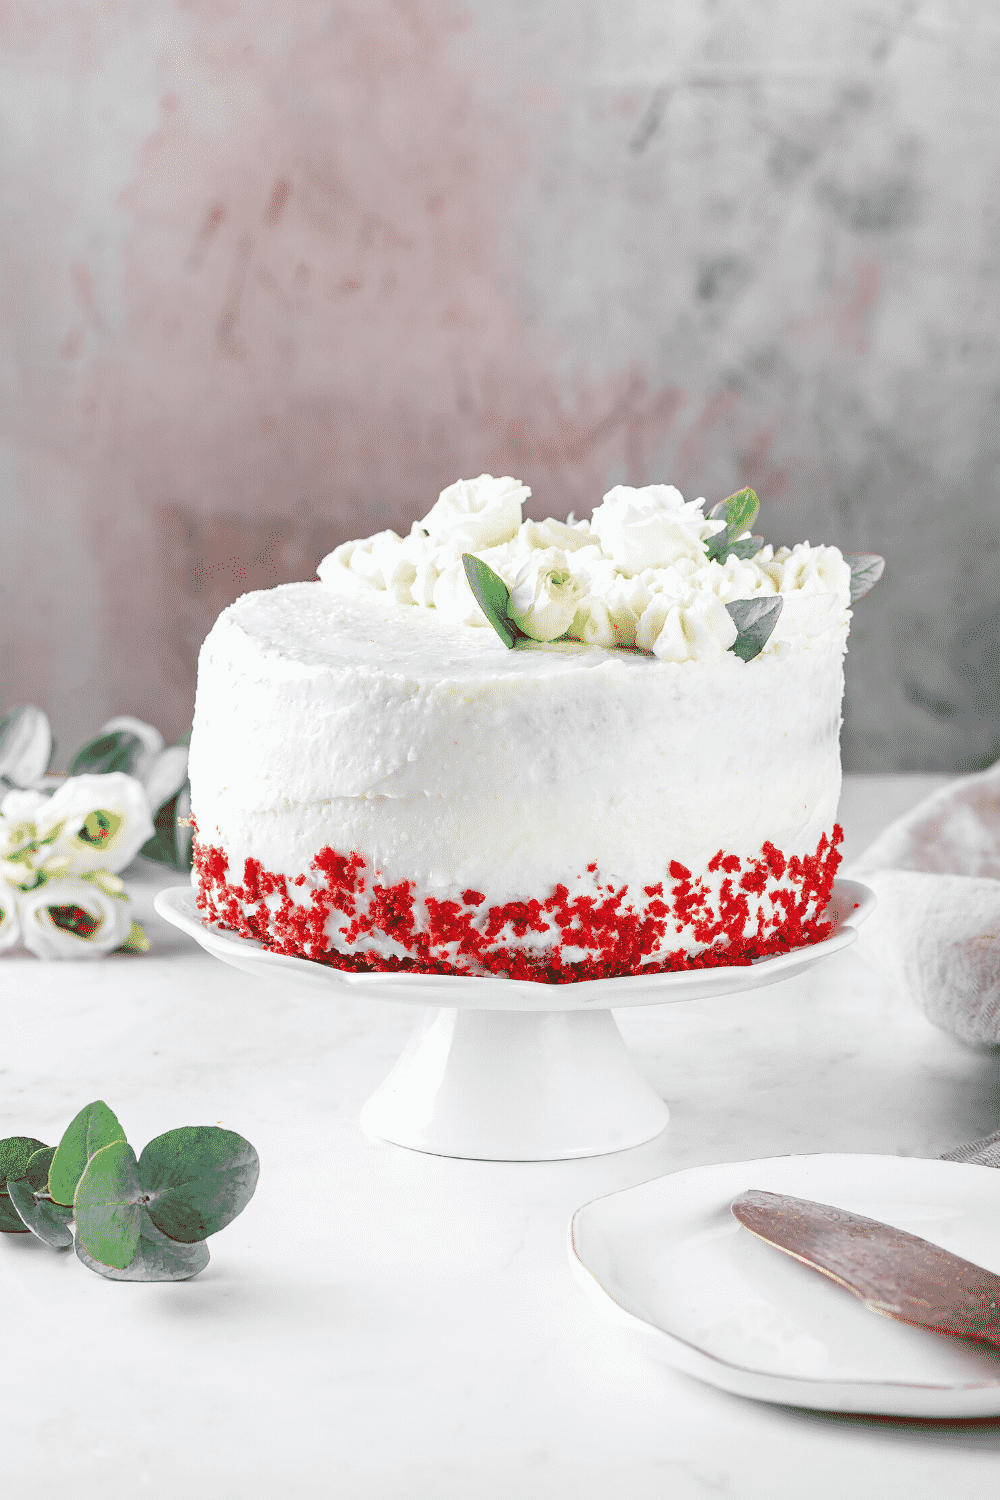 An entire red velvet cake on a white serving tray.